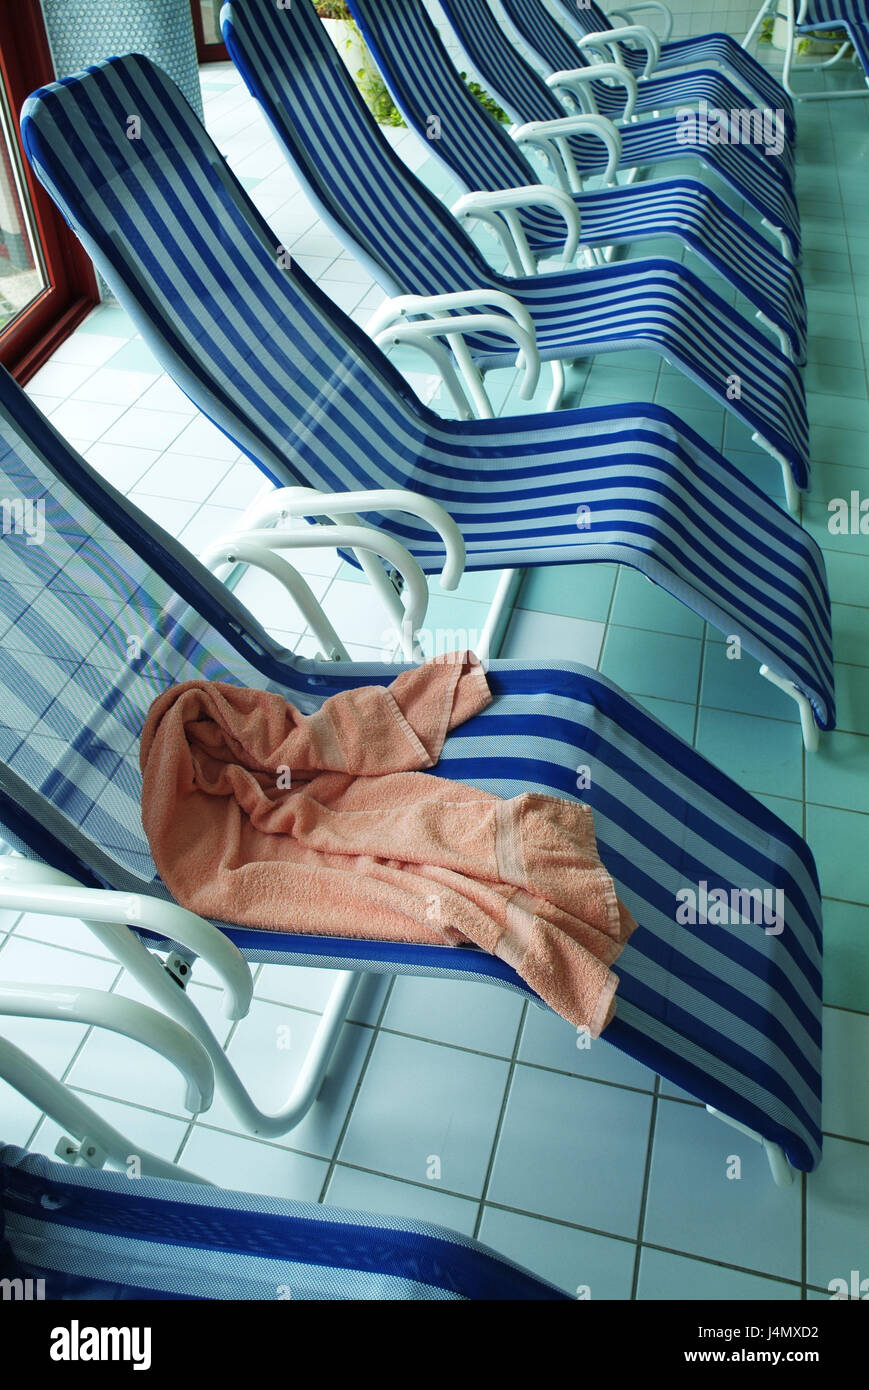 Swimming-pool, deck chairs, towel indoor swimming pool, lying, chairs, comfortably, rest, détente, leisure - Stock Image